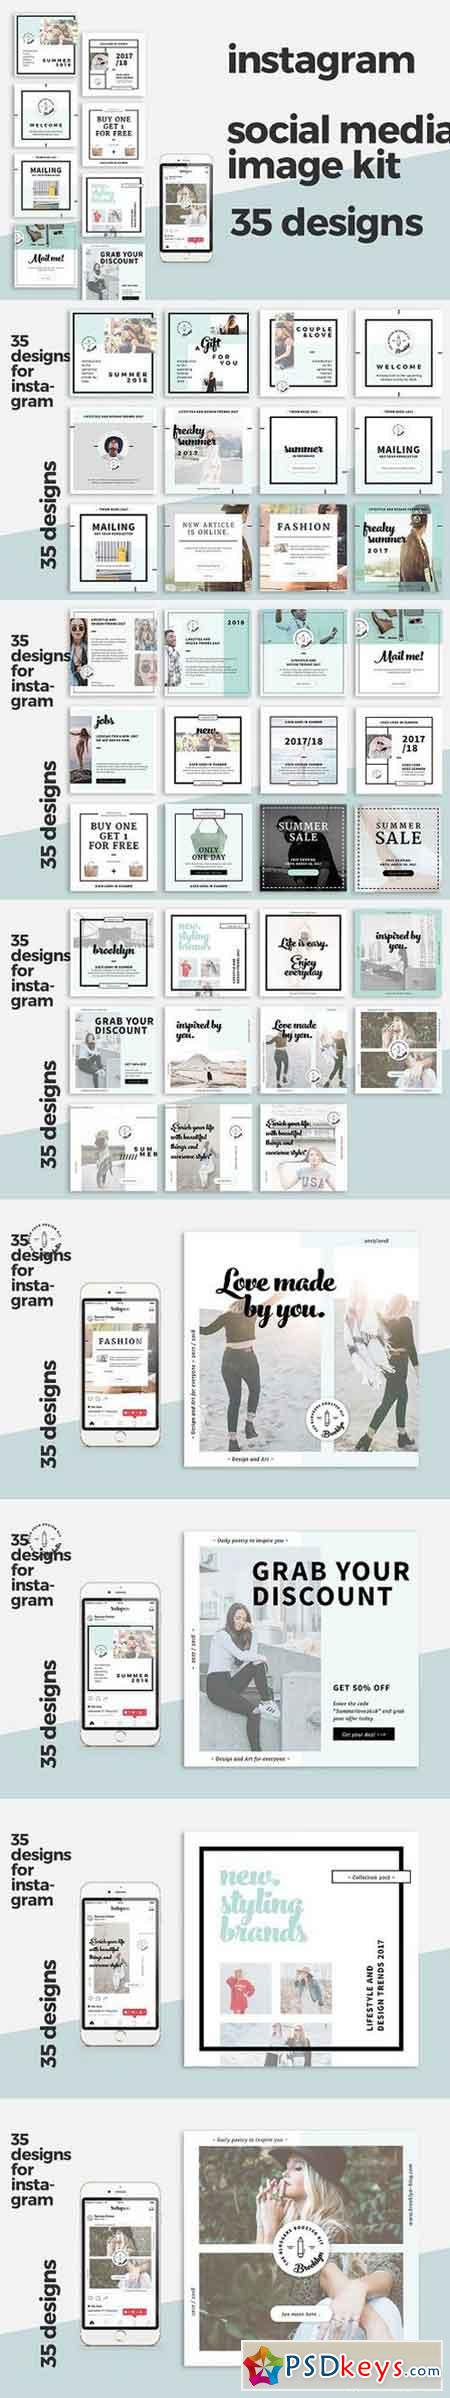 Instagram Templates 1644017